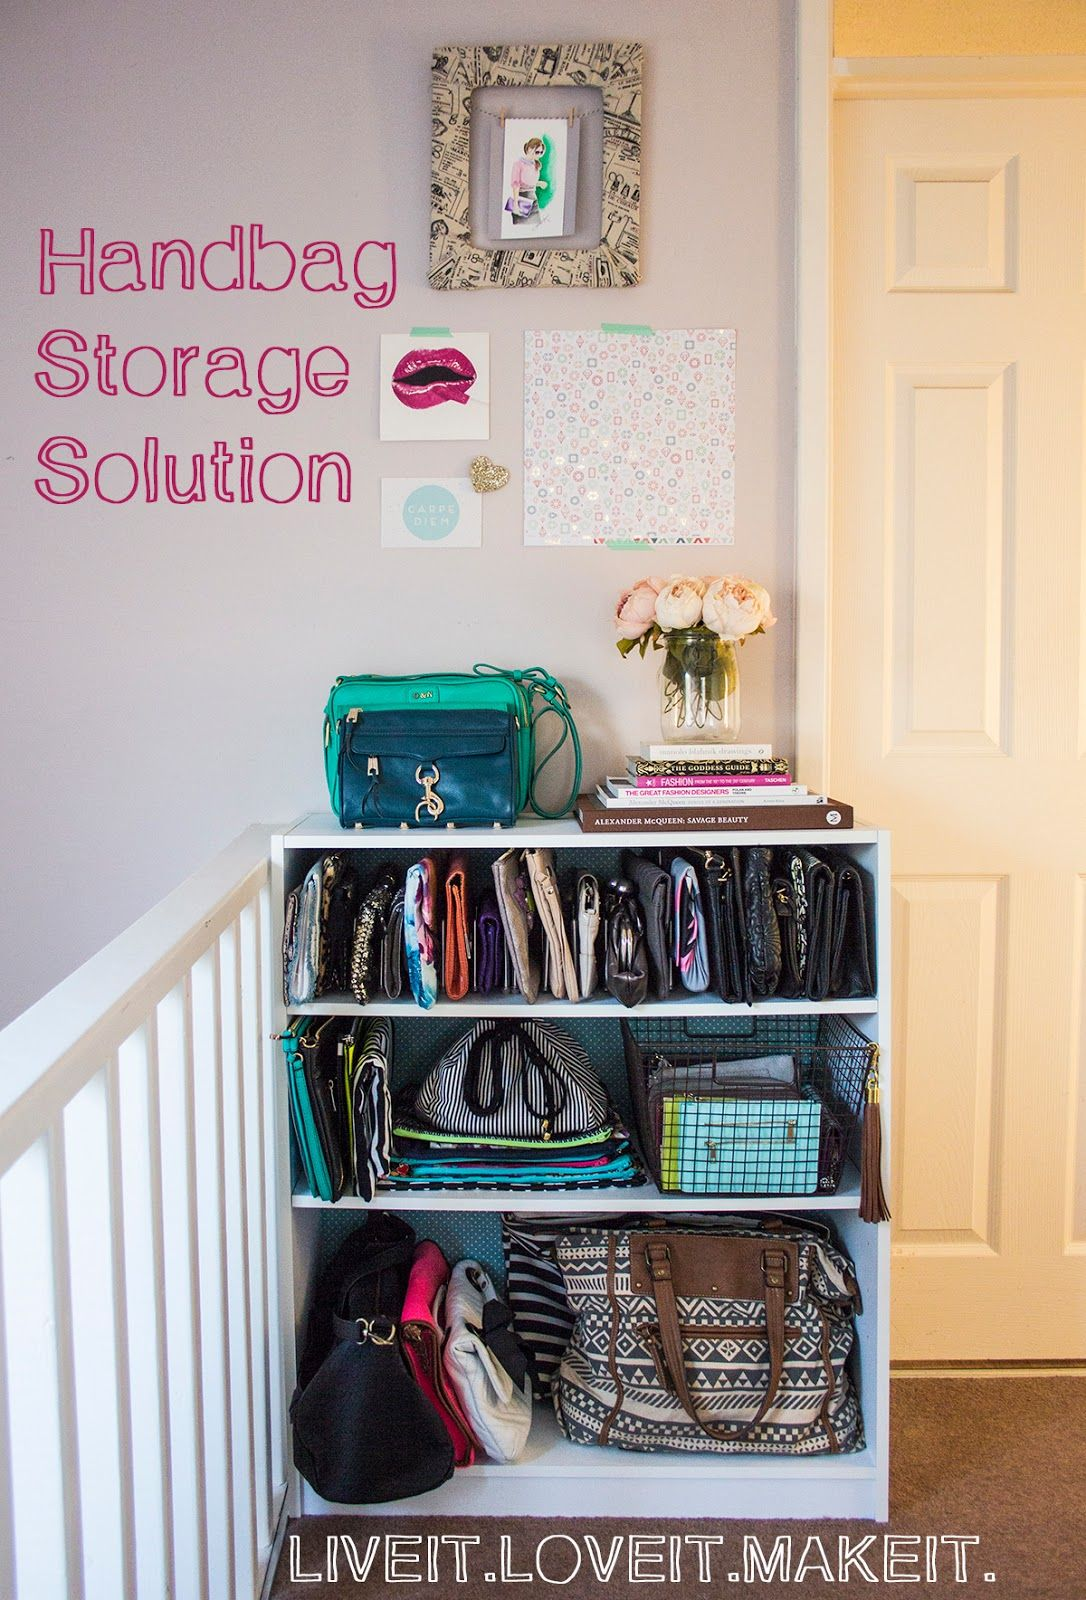 Exceptional Make It: Handbag Storage Solution